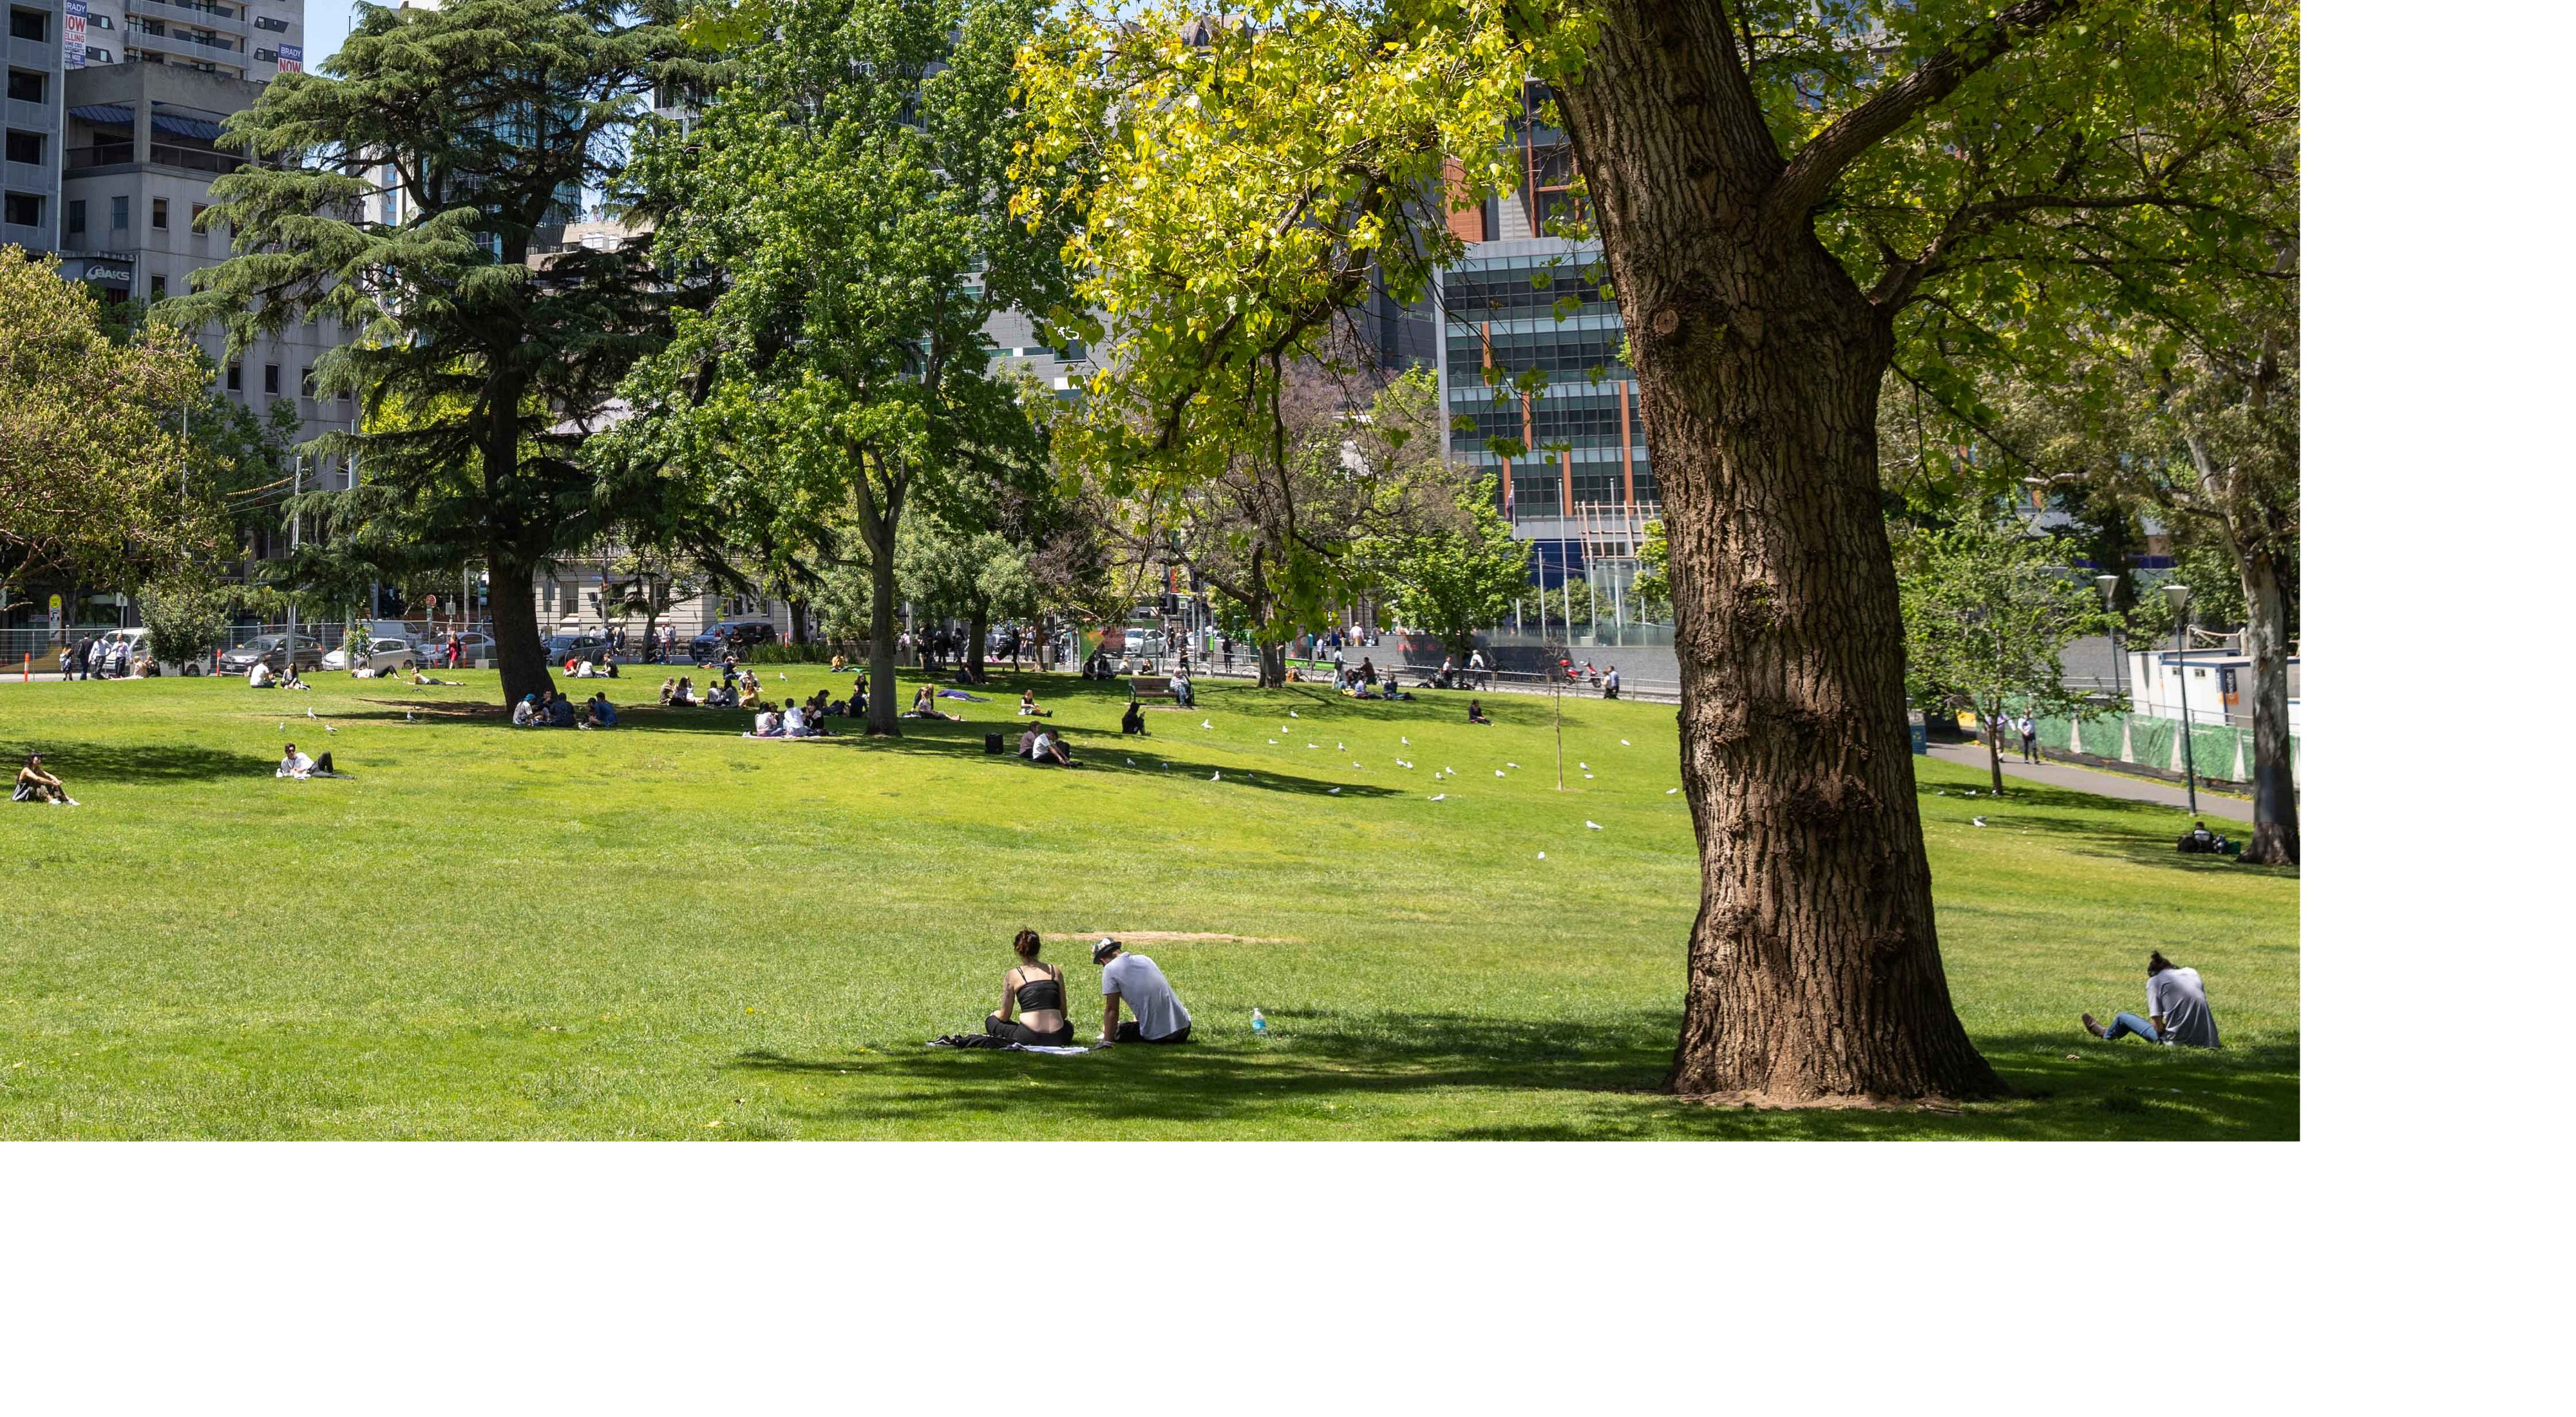 is developing a plan to ensure that future development brings with it more parks and nature.